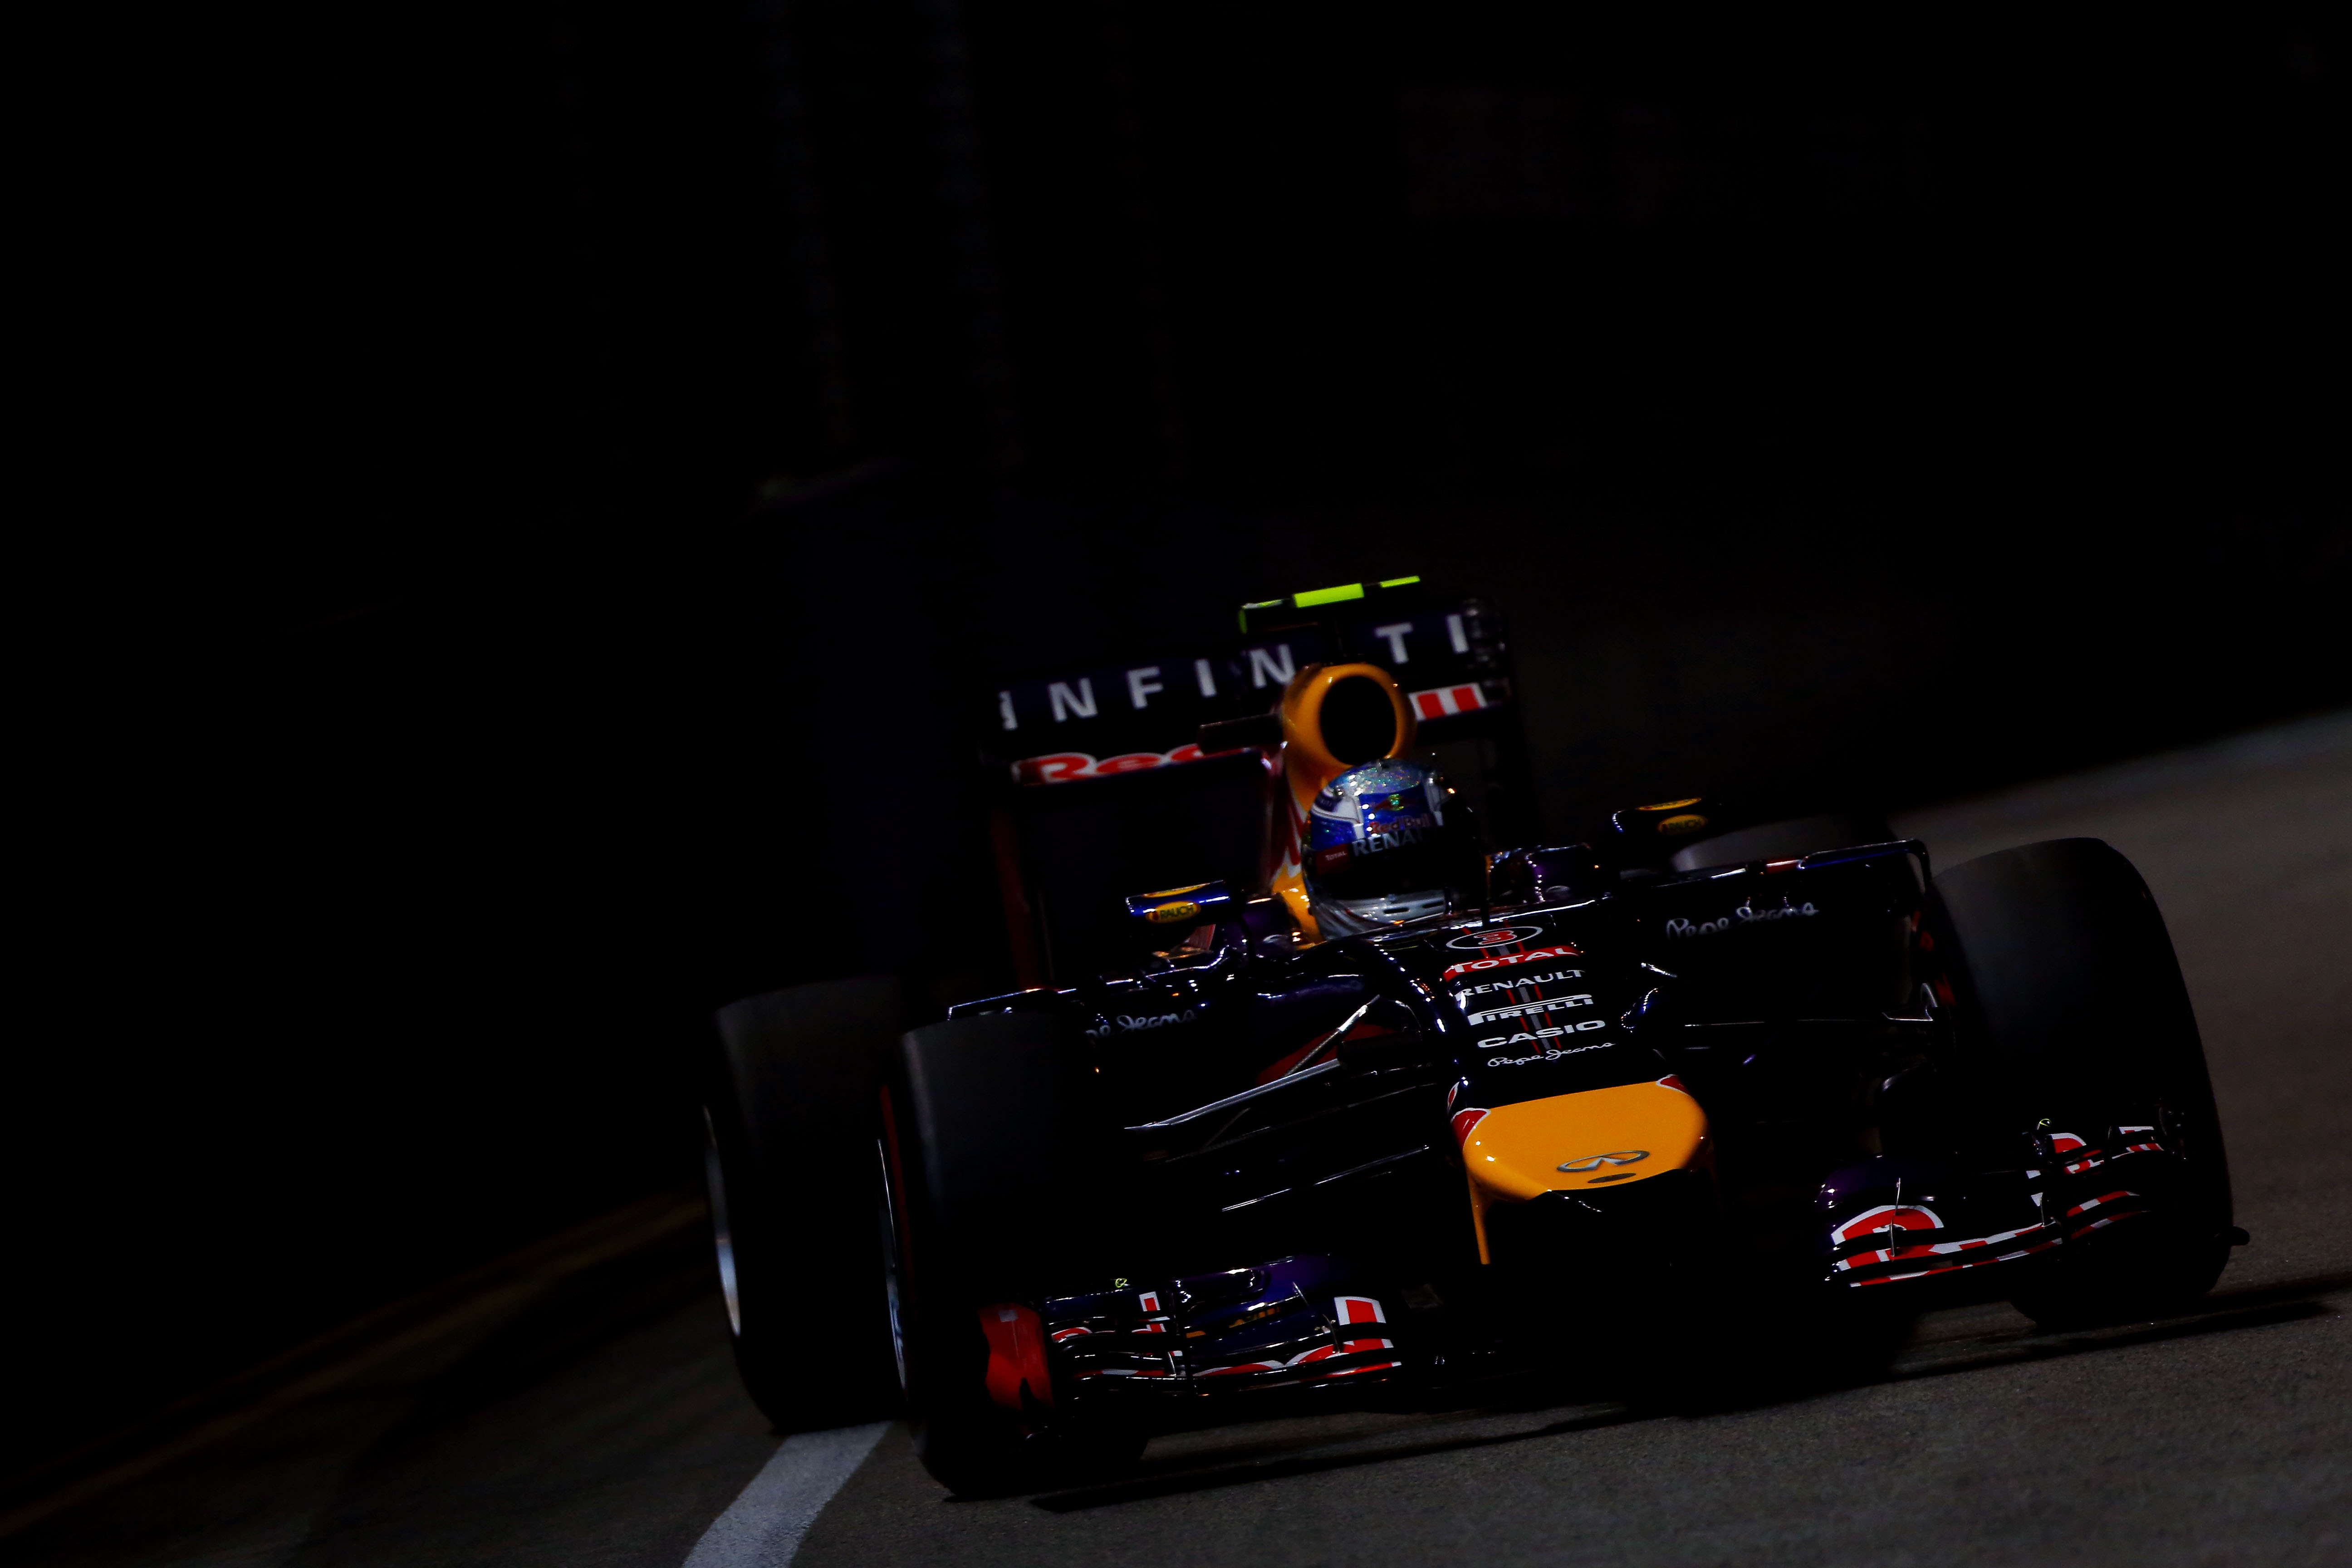 2014 Formula One Singapore Grand Prix Marina Bay Street Circuit, Singapore, 18th - 21st September 2014. Daniel Ricciardo, Red Bull Racing RB10 Renault,Action, World Copyright: © Andrew Hone Photographer 2014. Ref:  _ONZ6978